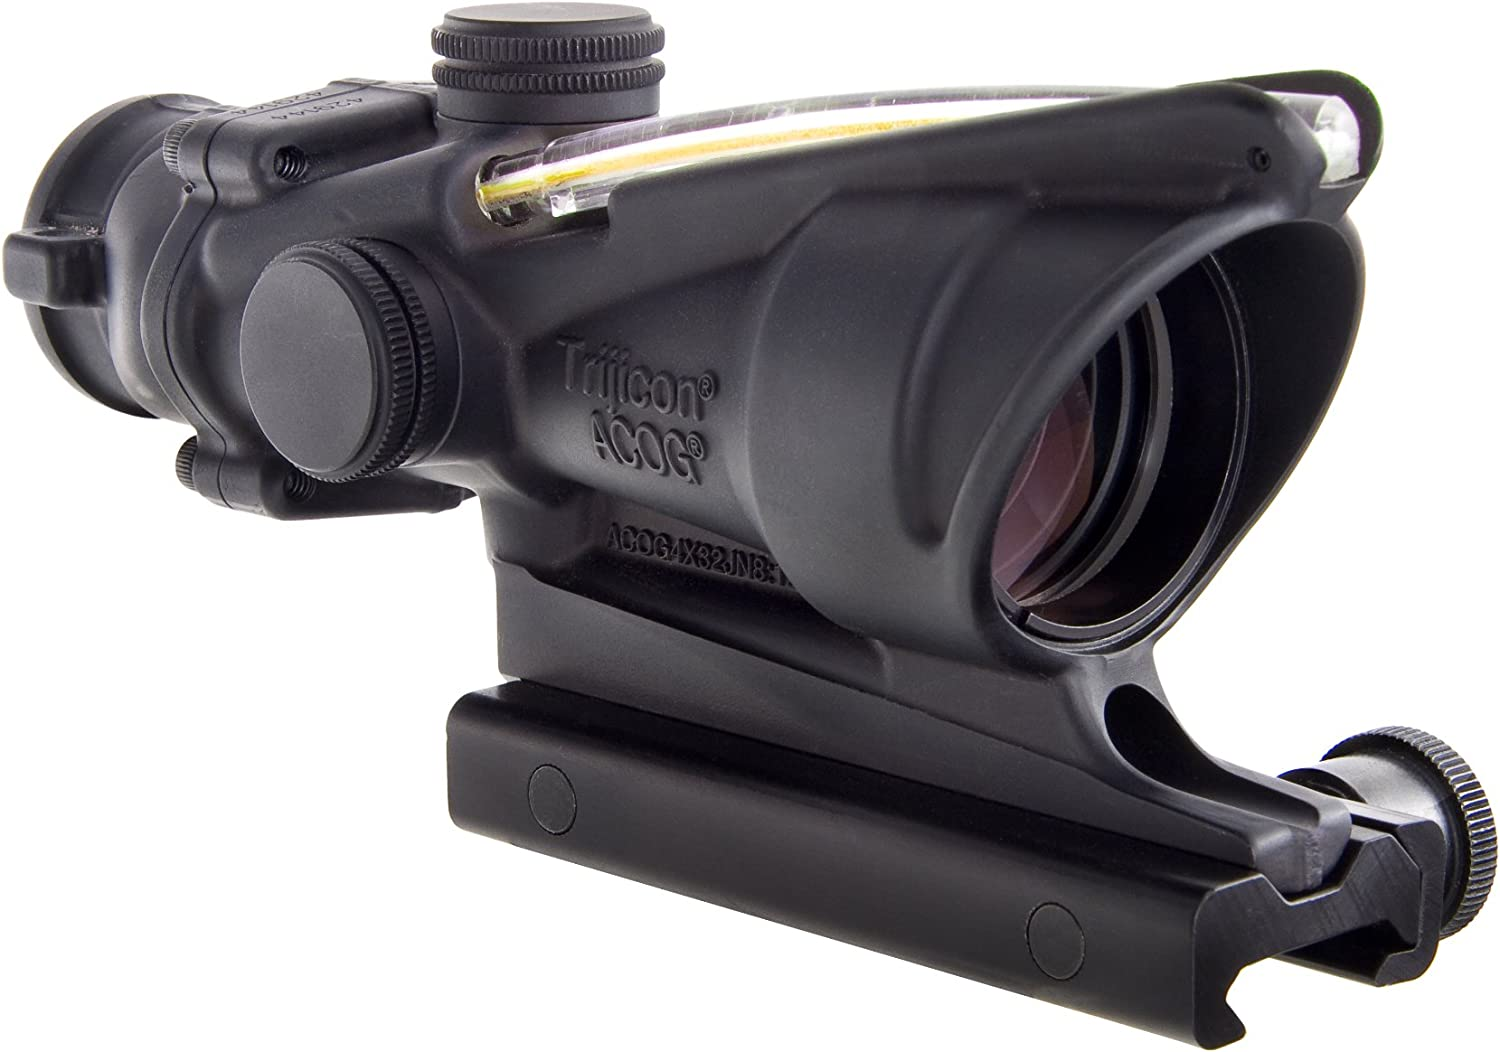 Trijicon ACOG 4 X 32 Scope Dual Illuminated Chevron .223 Ballistic Reticle, Amber